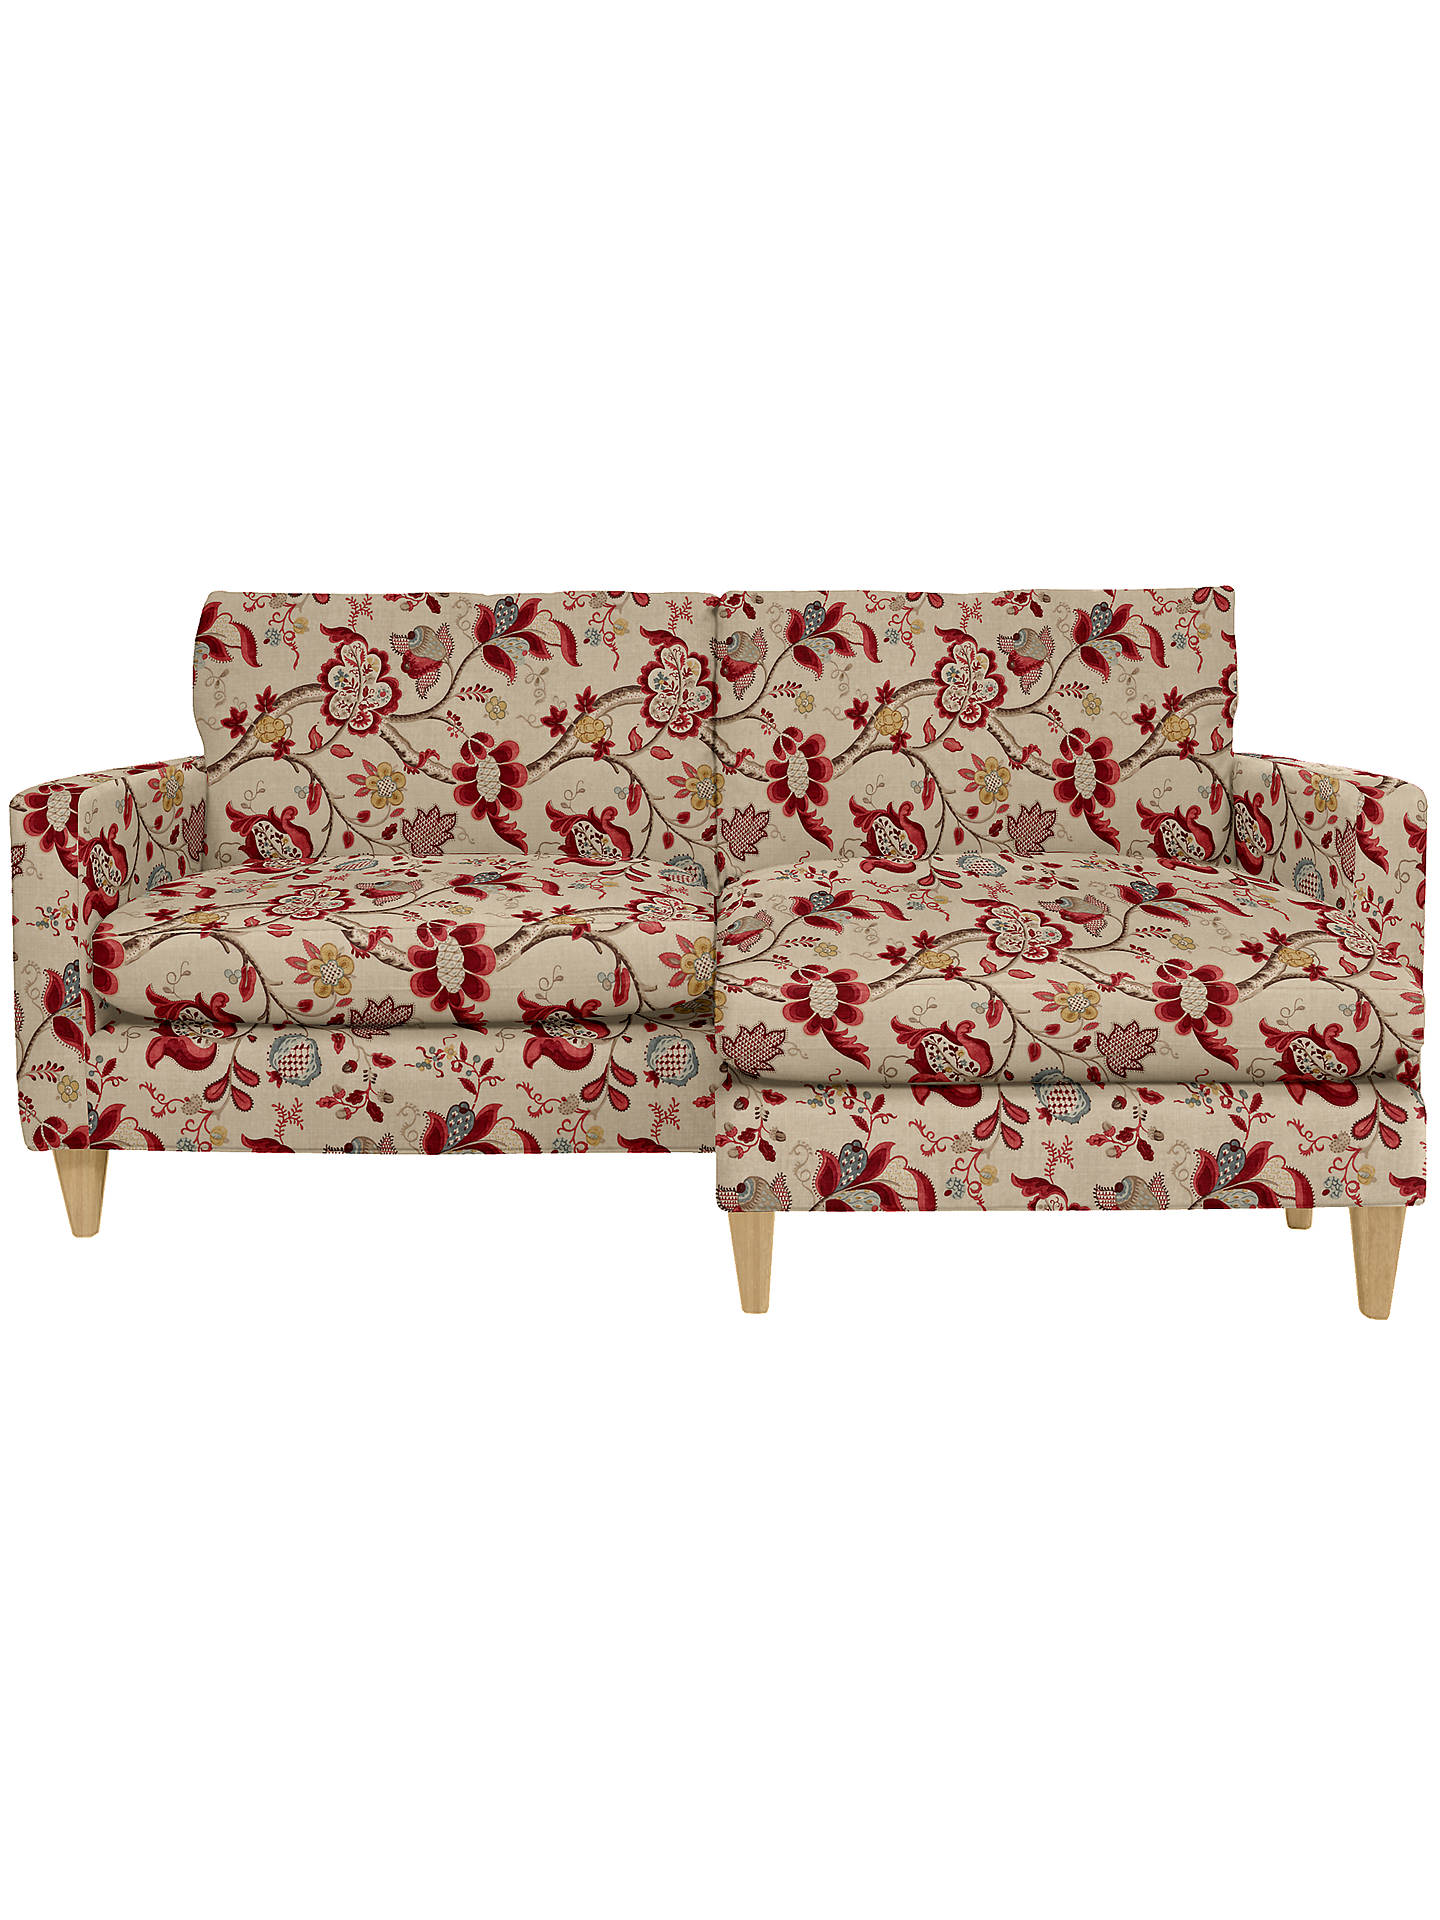 Awe Inspiring John Lewis Bailey Rhf Loose Cover Chaise End Sofa Price Alphanode Cool Chair Designs And Ideas Alphanodeonline